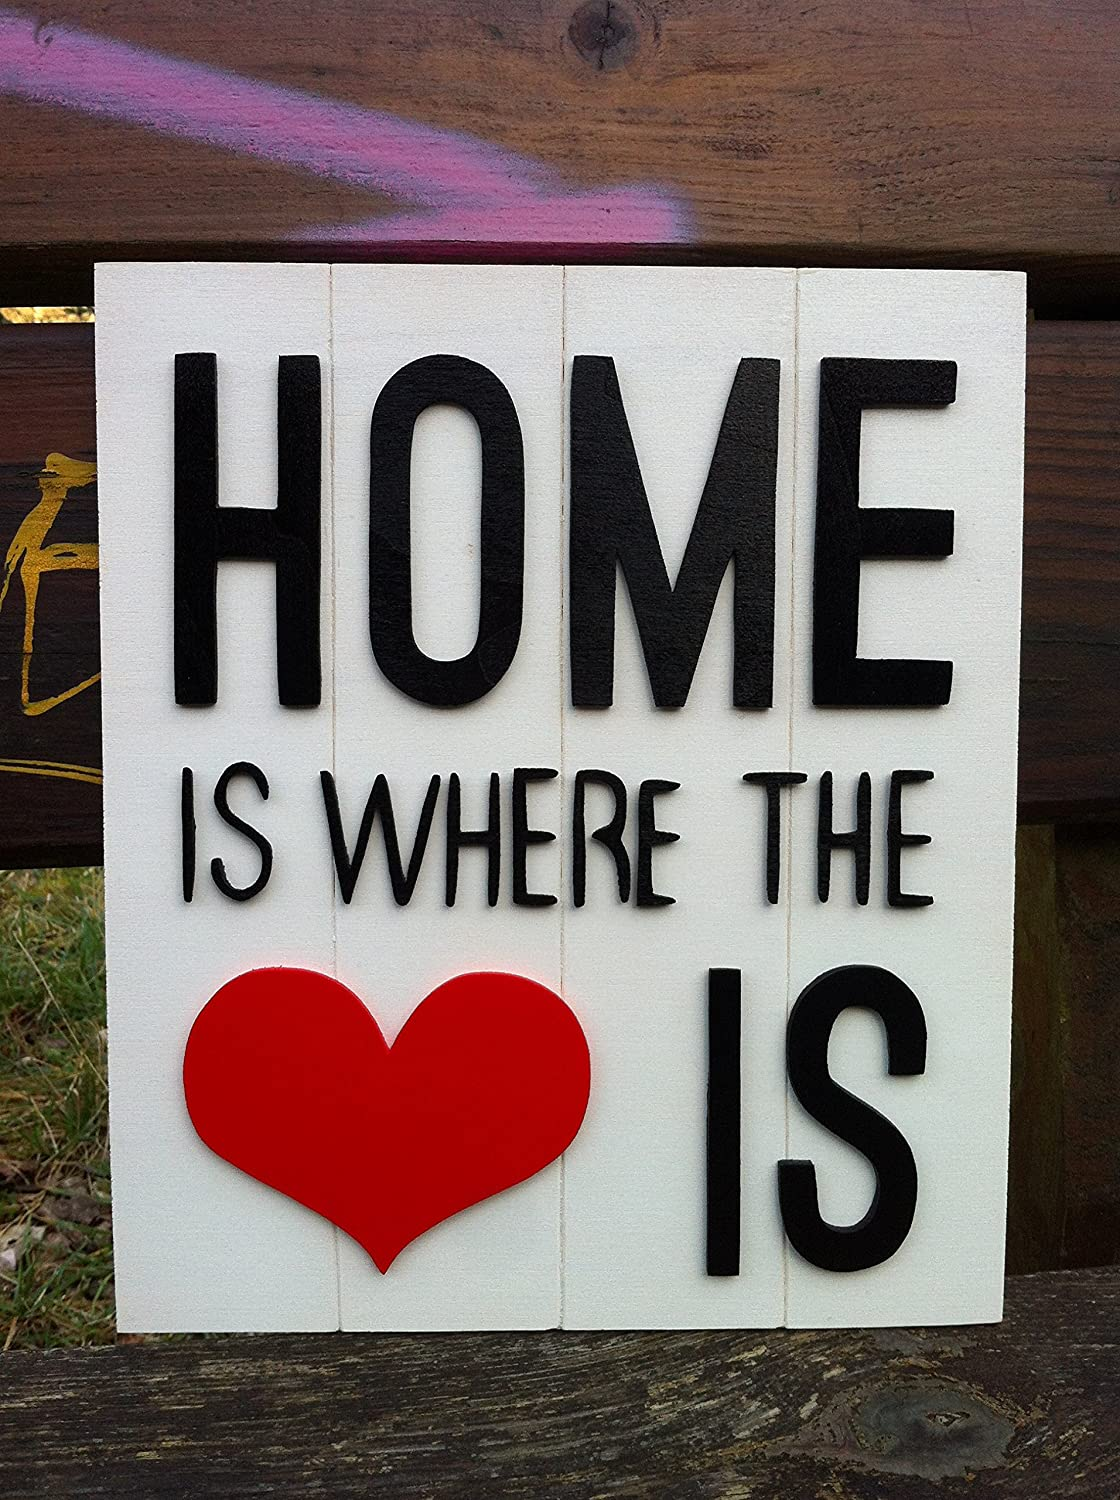 Home love cartel de madera